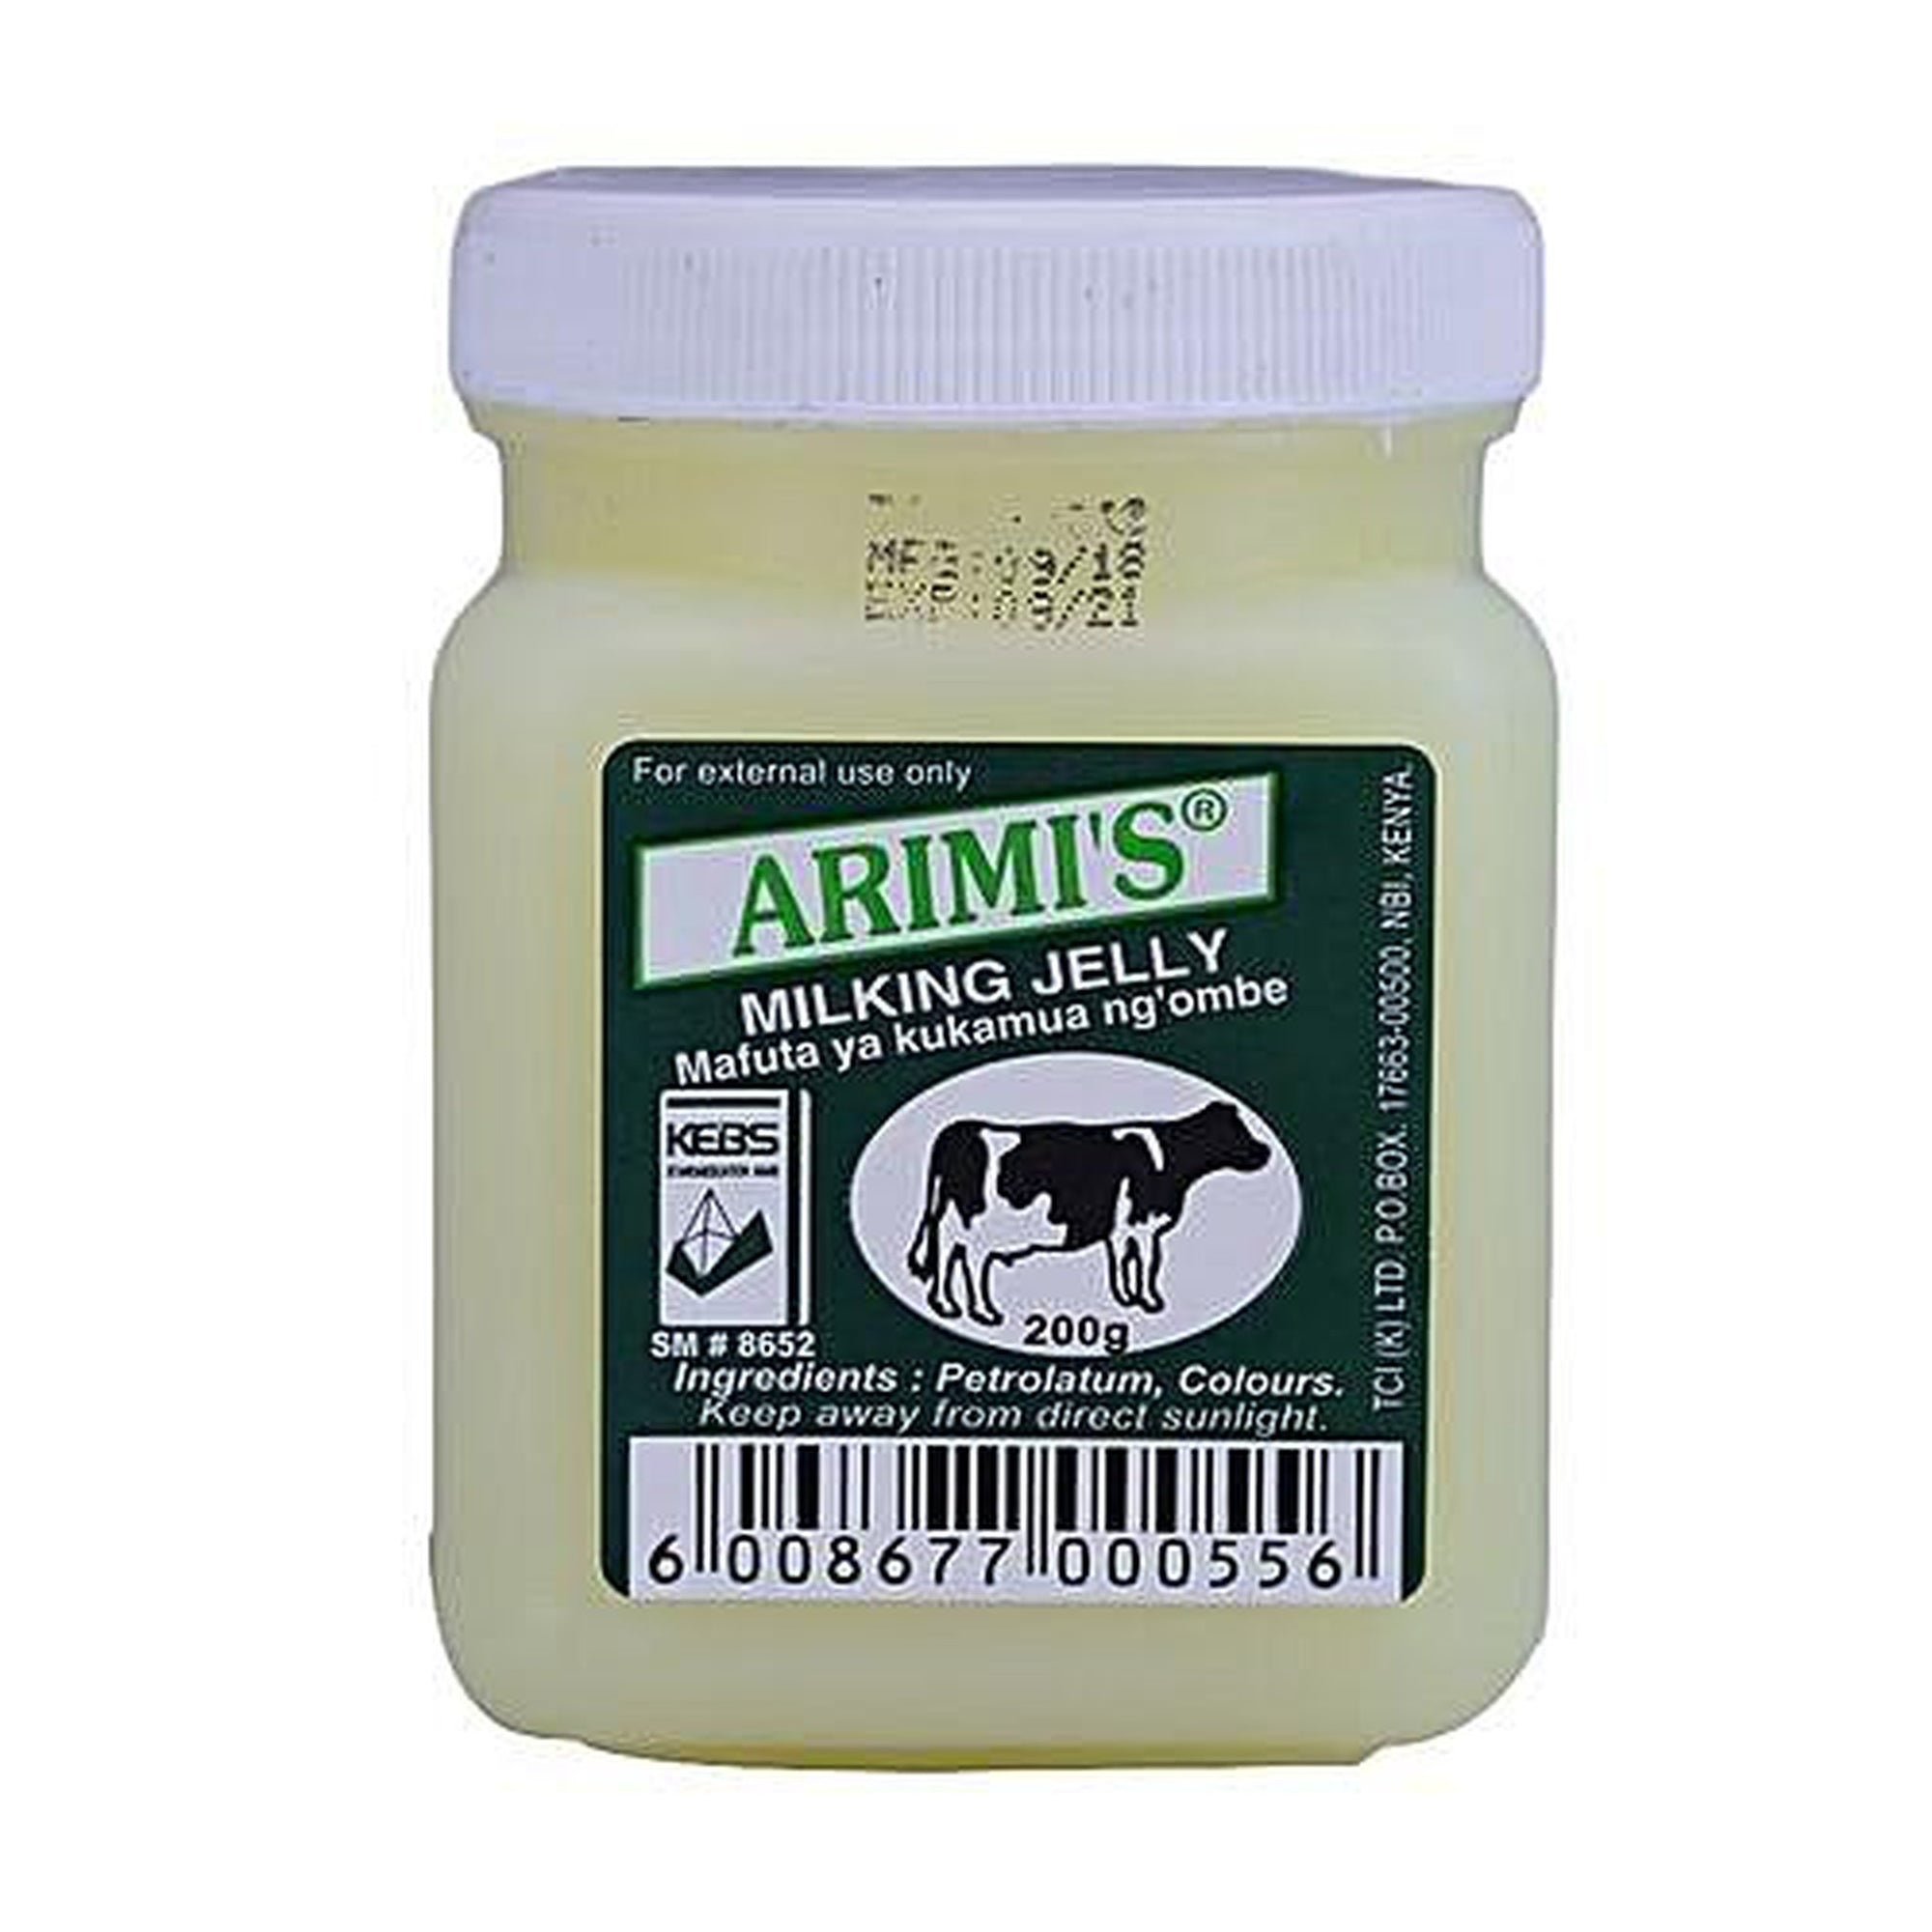 Arimis Milking Jelly 200G-Skin Care-Mother and Baby Shop Kenya's #1 Online Baby Shop